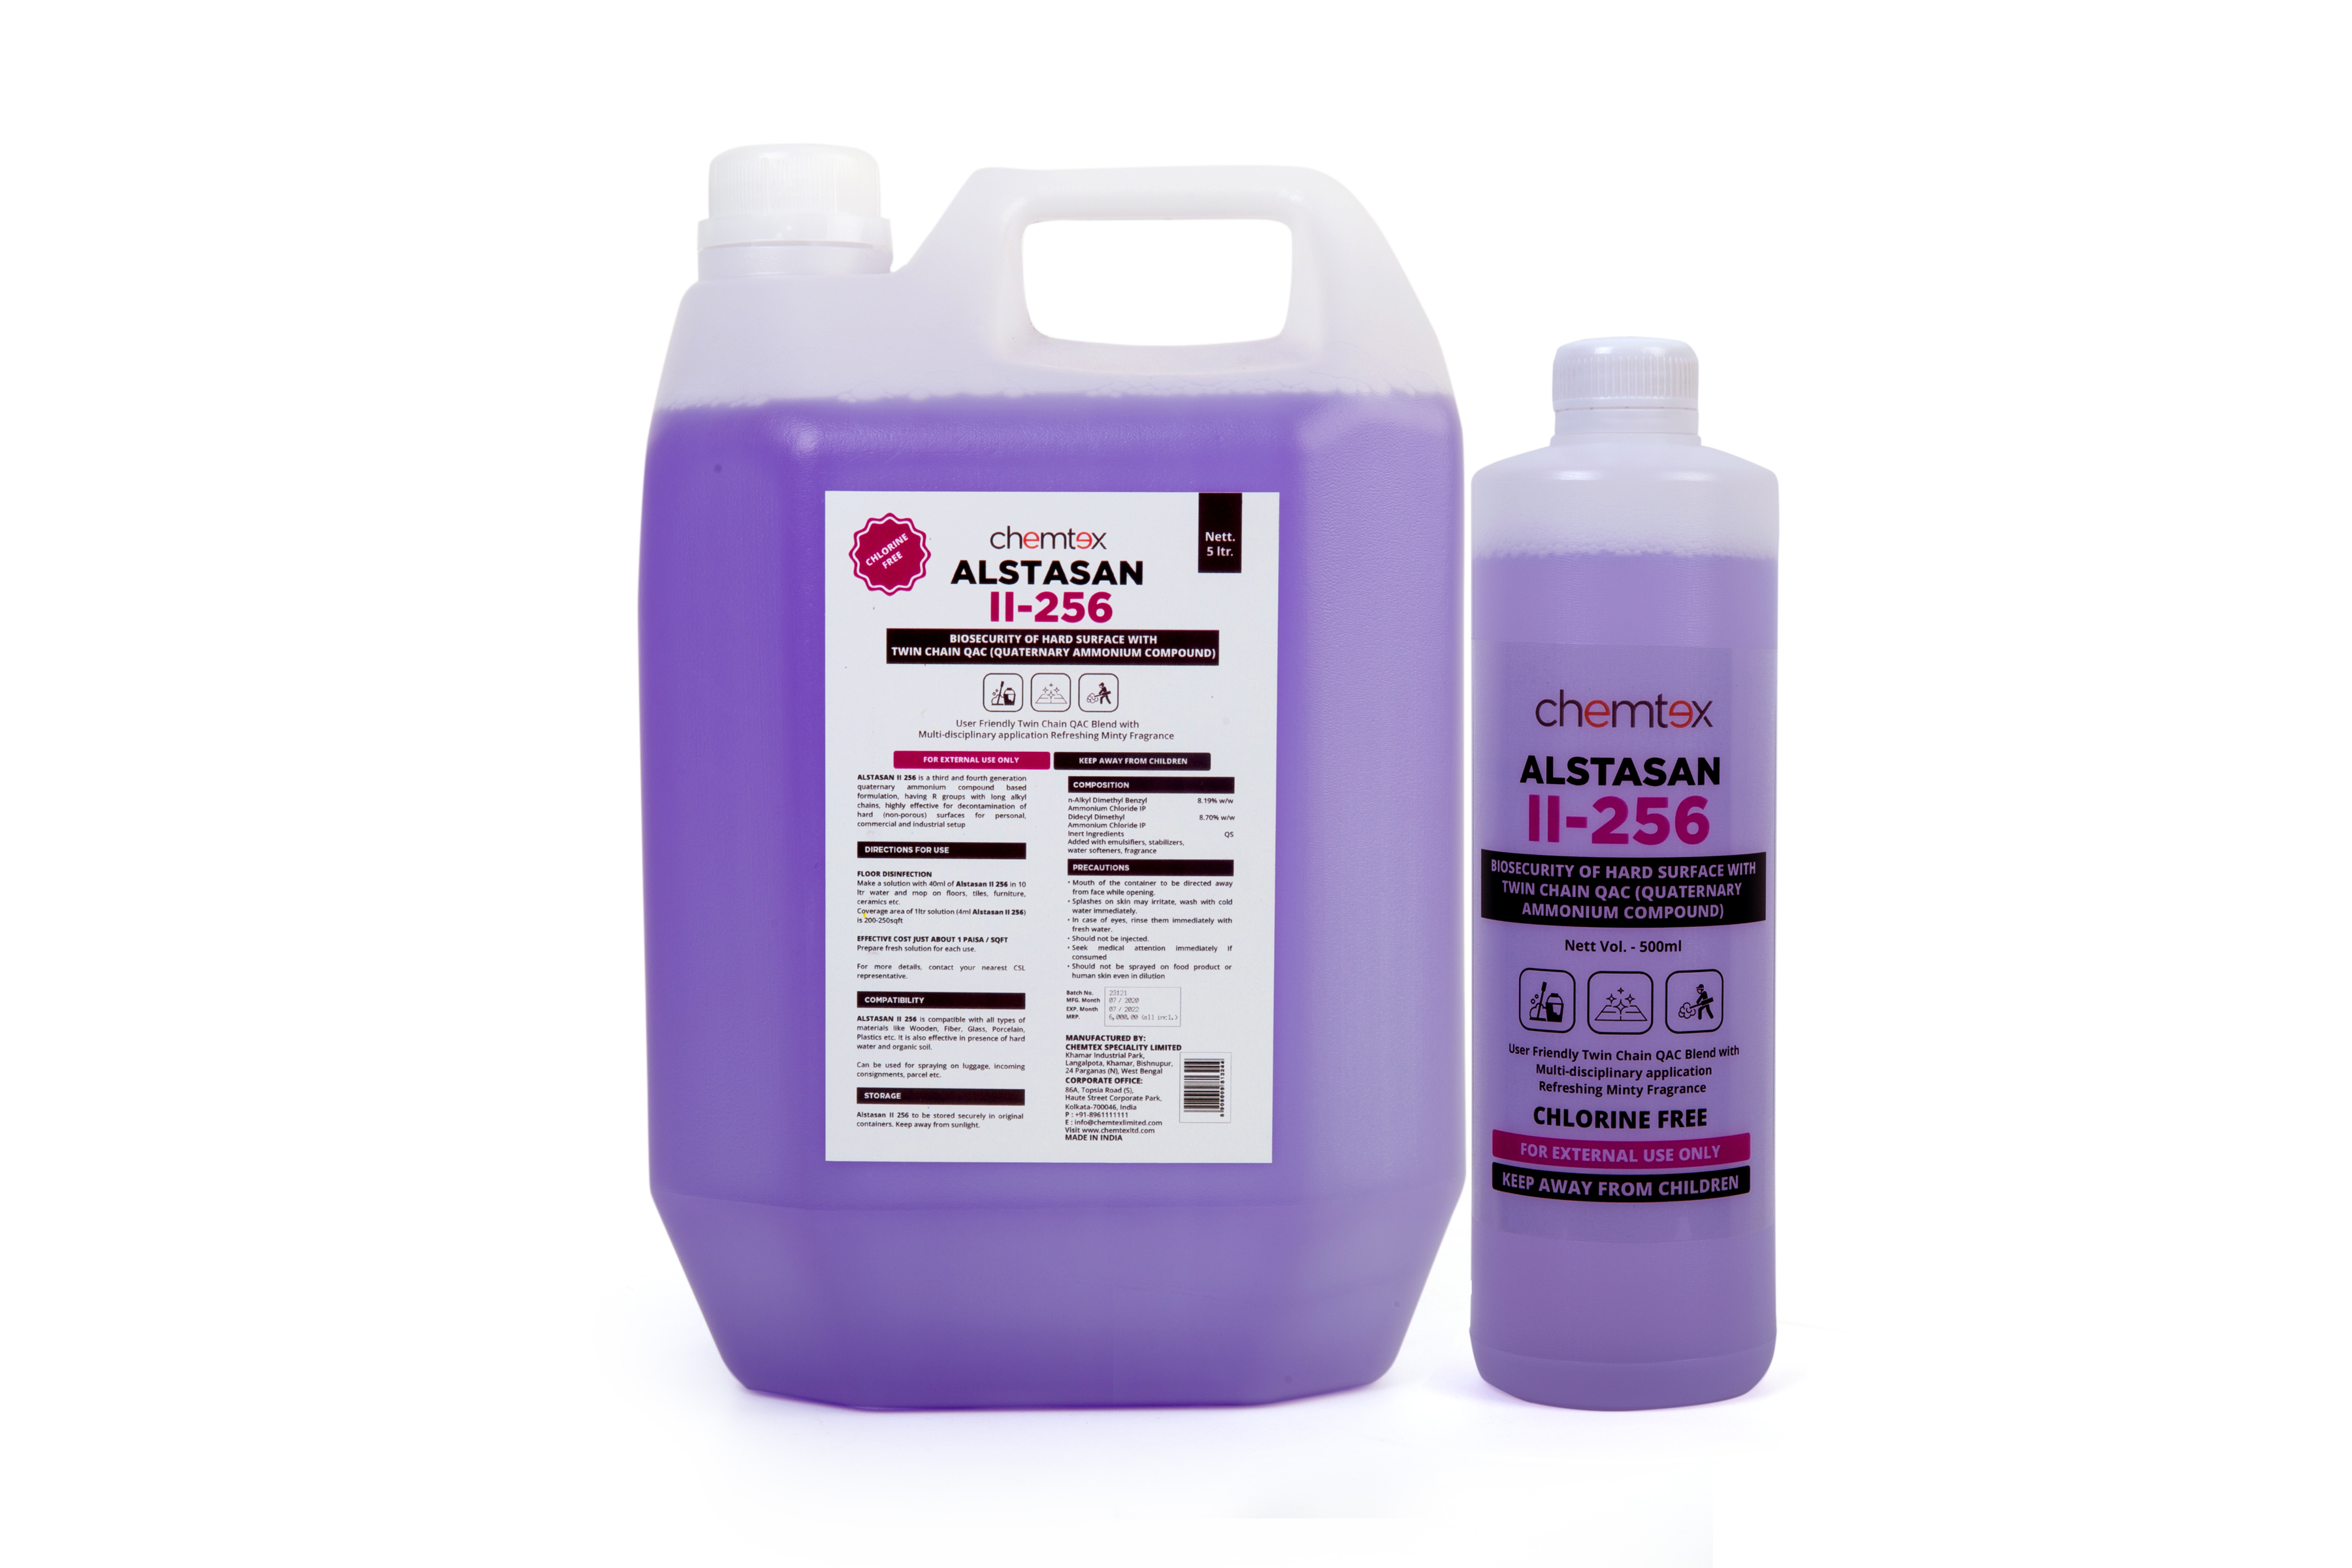 Biosecurity Disinfection Kit